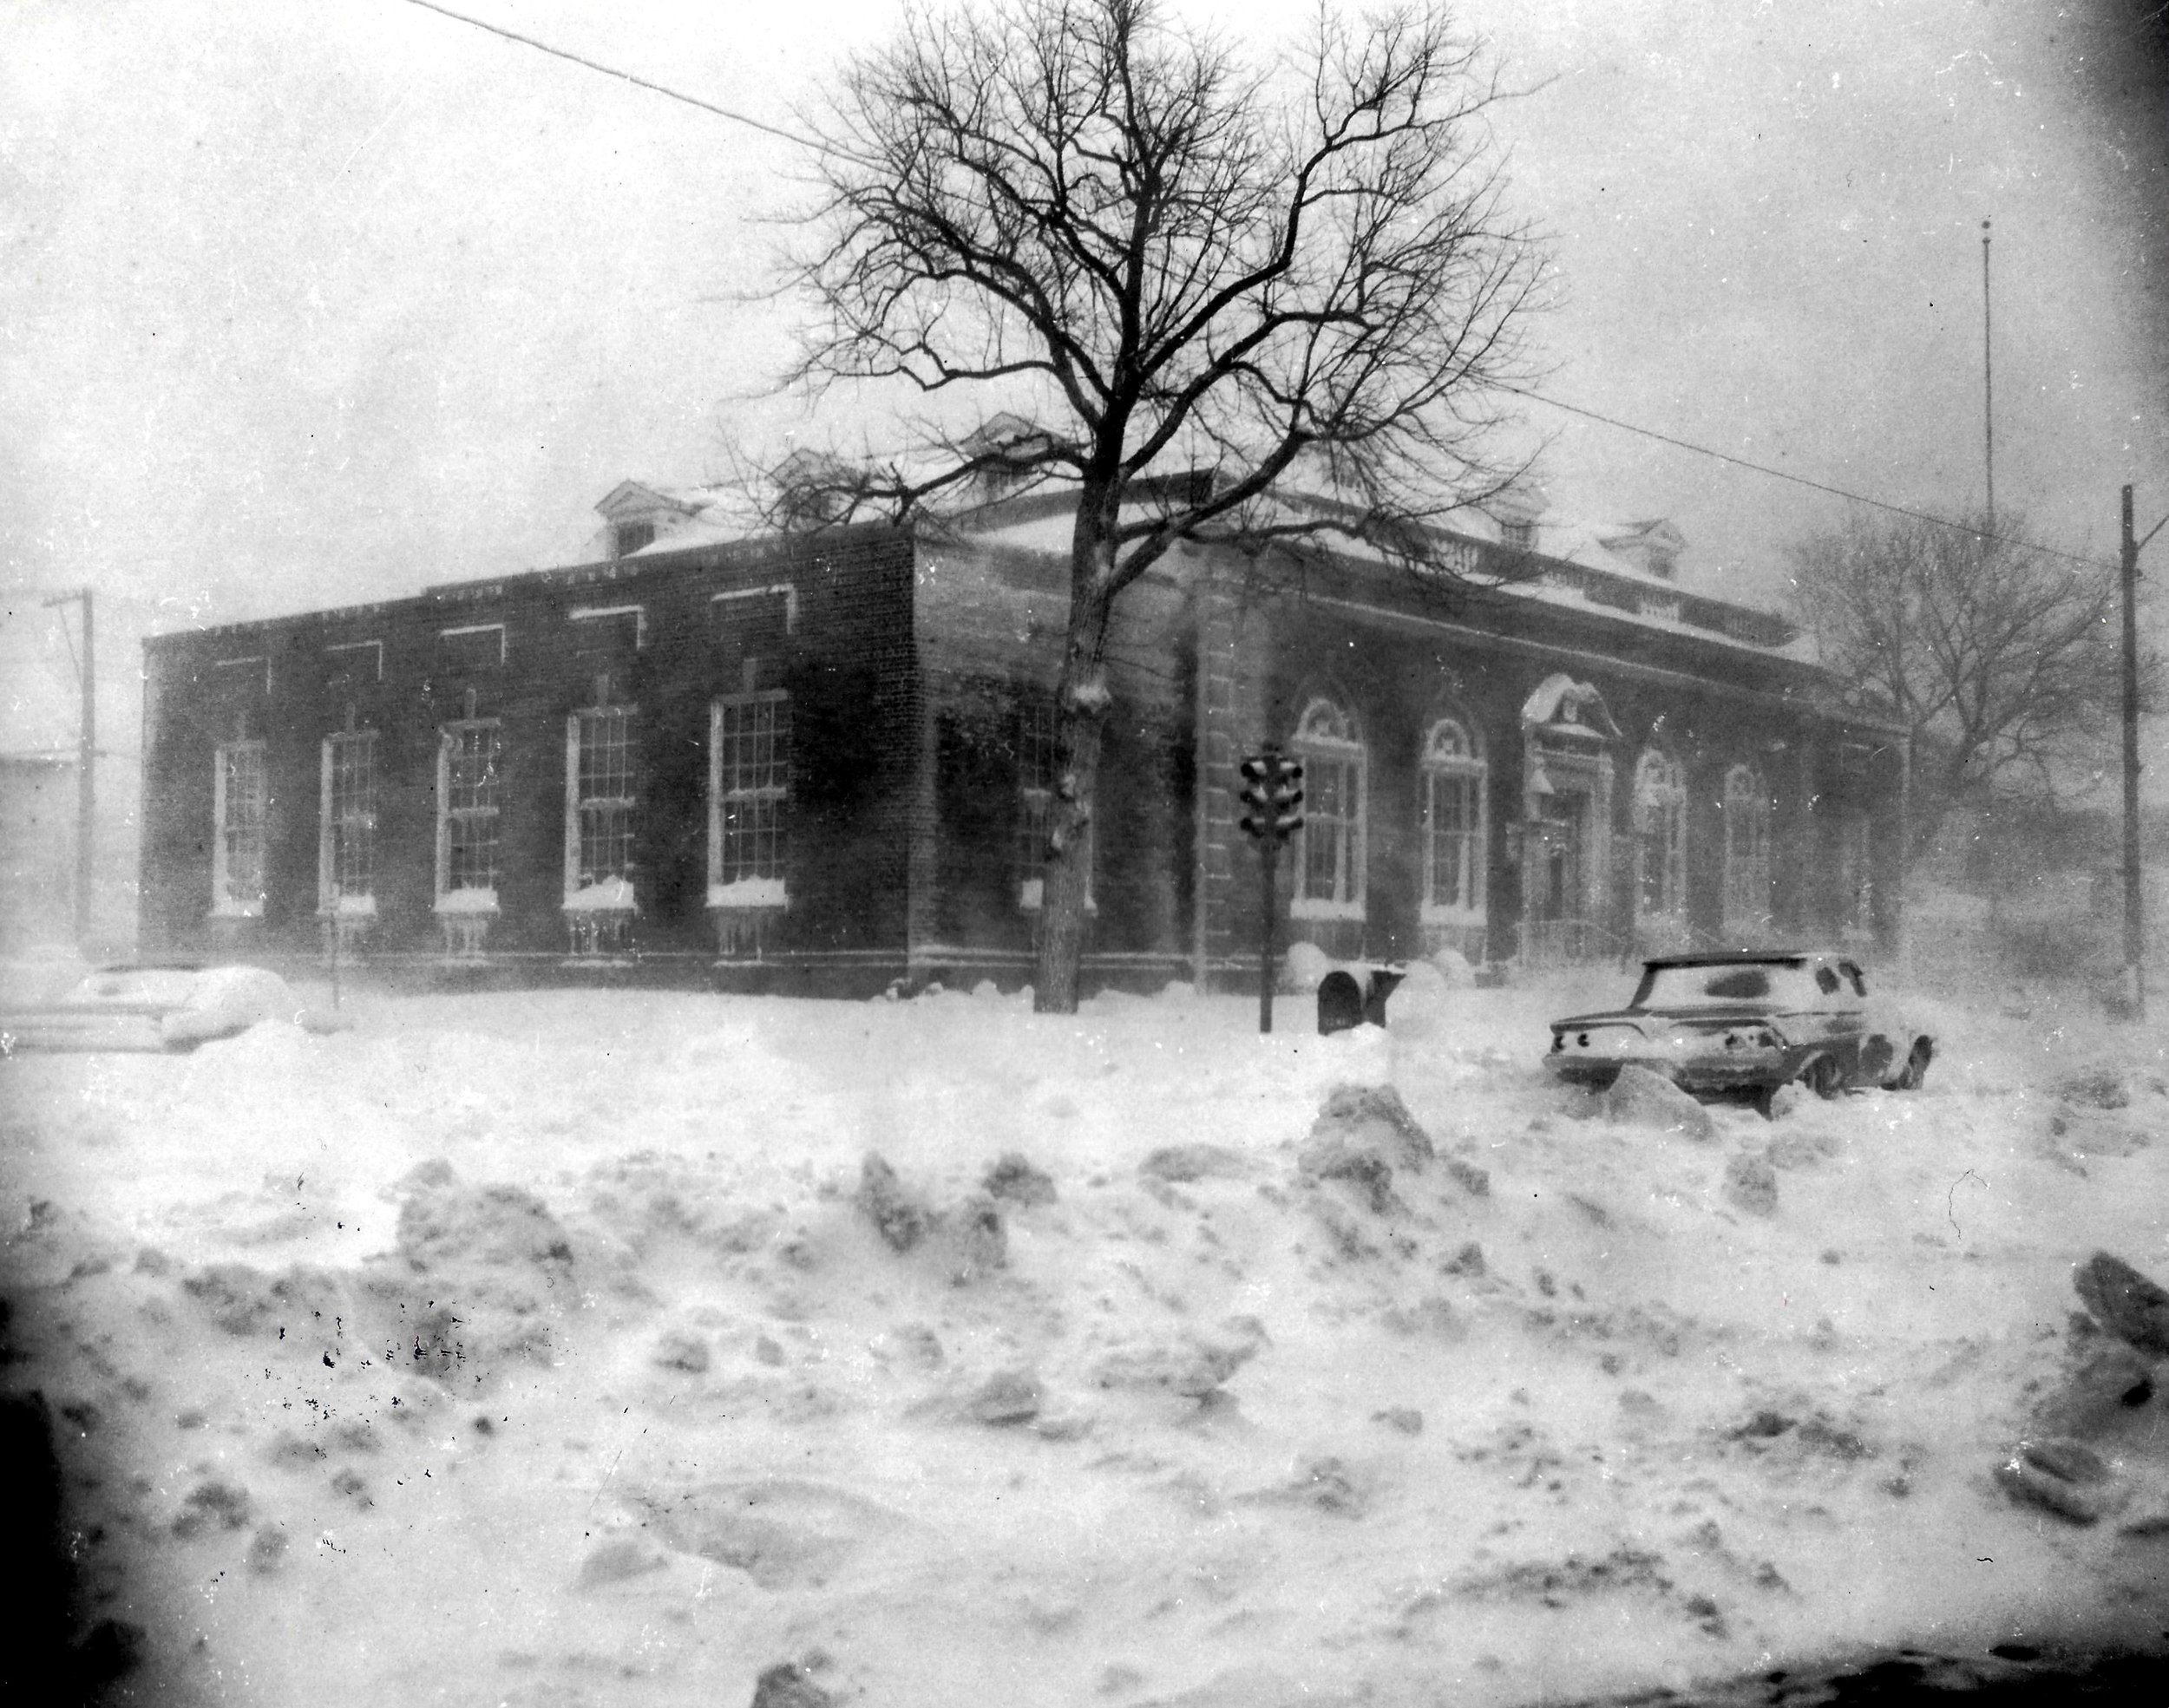 Snow piled up at 119th Street and New York Avenue, with the Whiting Post Office in the background, a stranded car to the right.